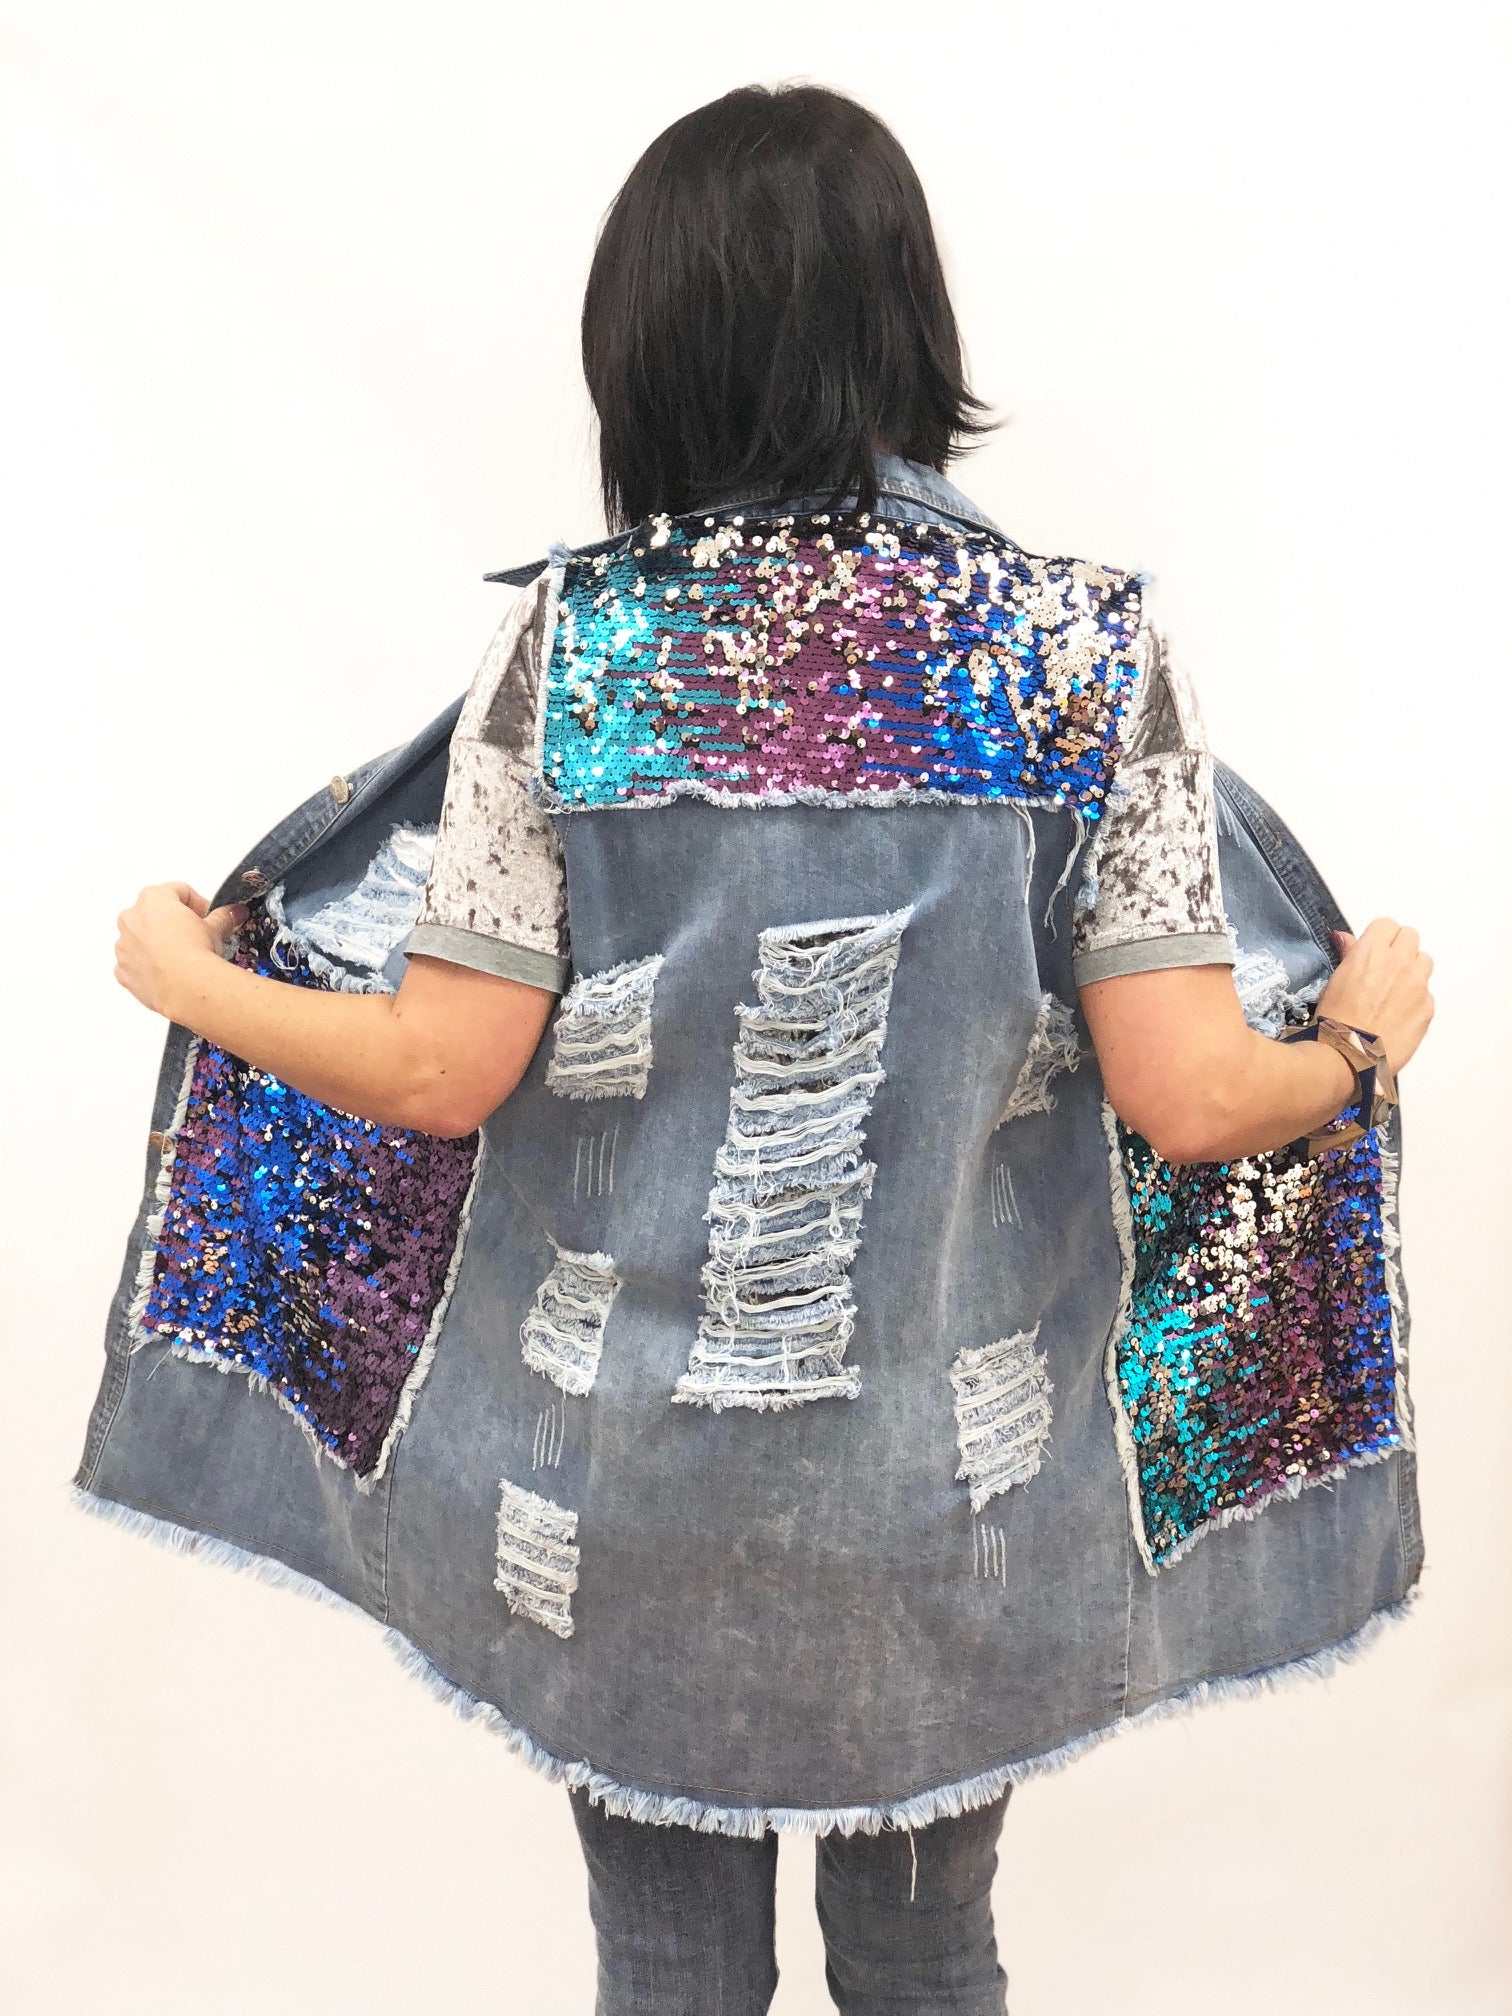 sequin destressed vest womens amazon street style mermaid long pockets plus size colorful ASOS  Roamans Cichic Missguided